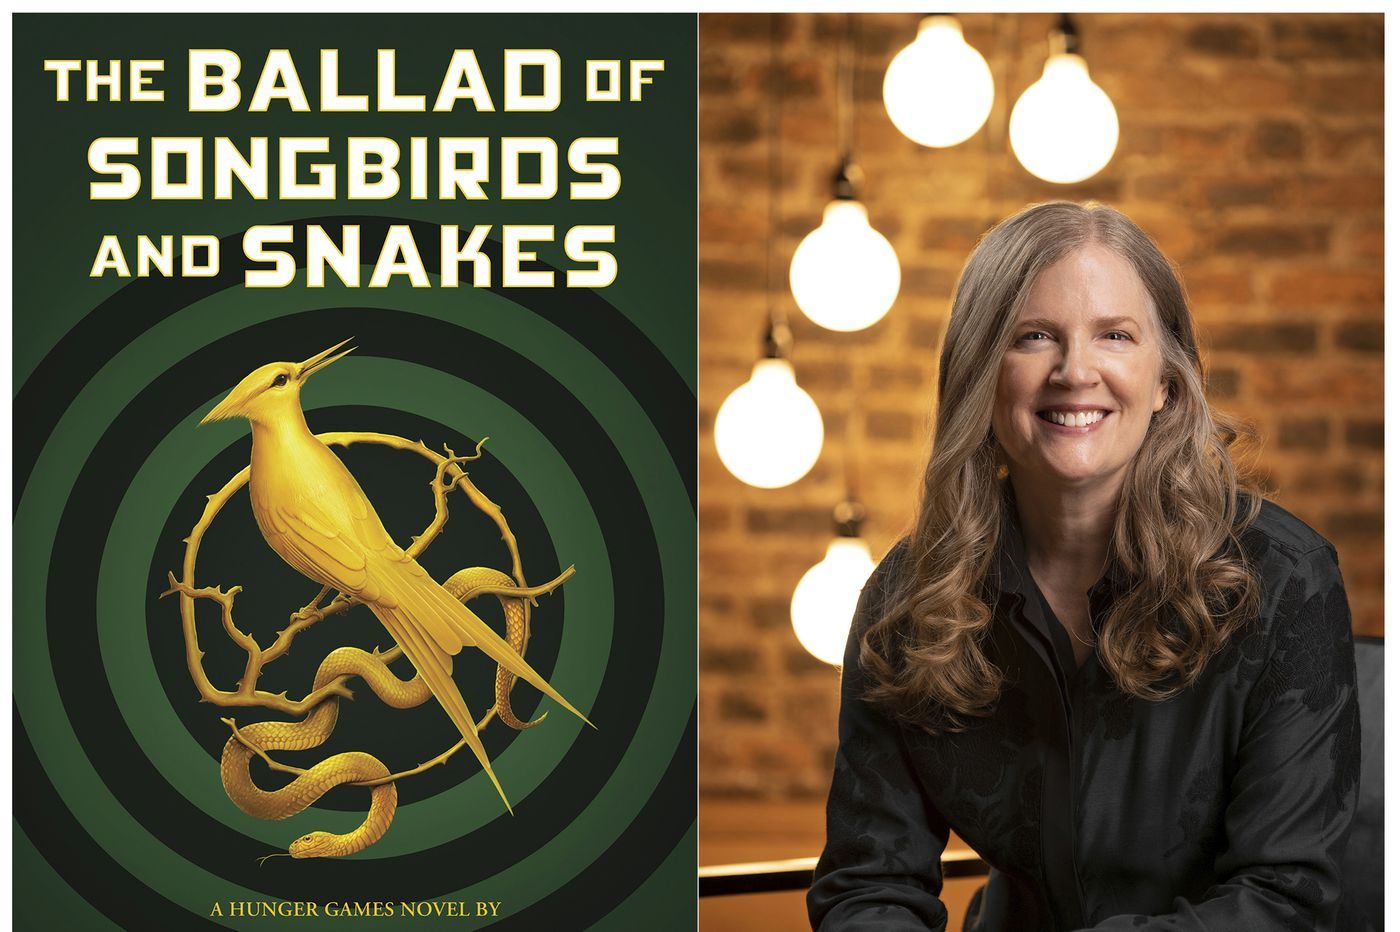 'Hunger Games' prequel 'The Ballad of Songbirds and Snakes' delivers | Book review